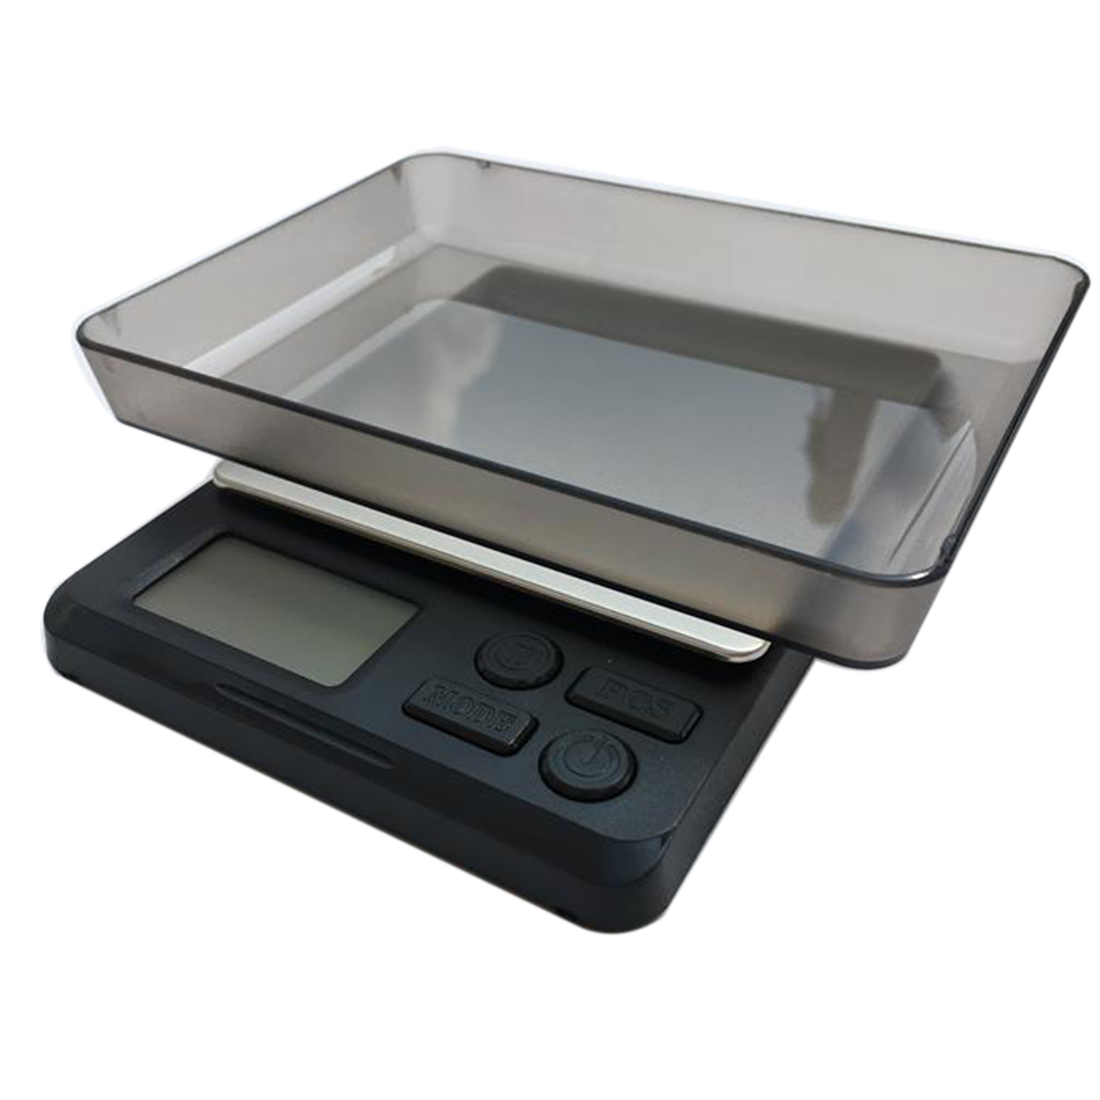 Scale Weigh Digital Electronic Scales-1000g/0.1g Mini New Lcd-Display Jewelry Pocket